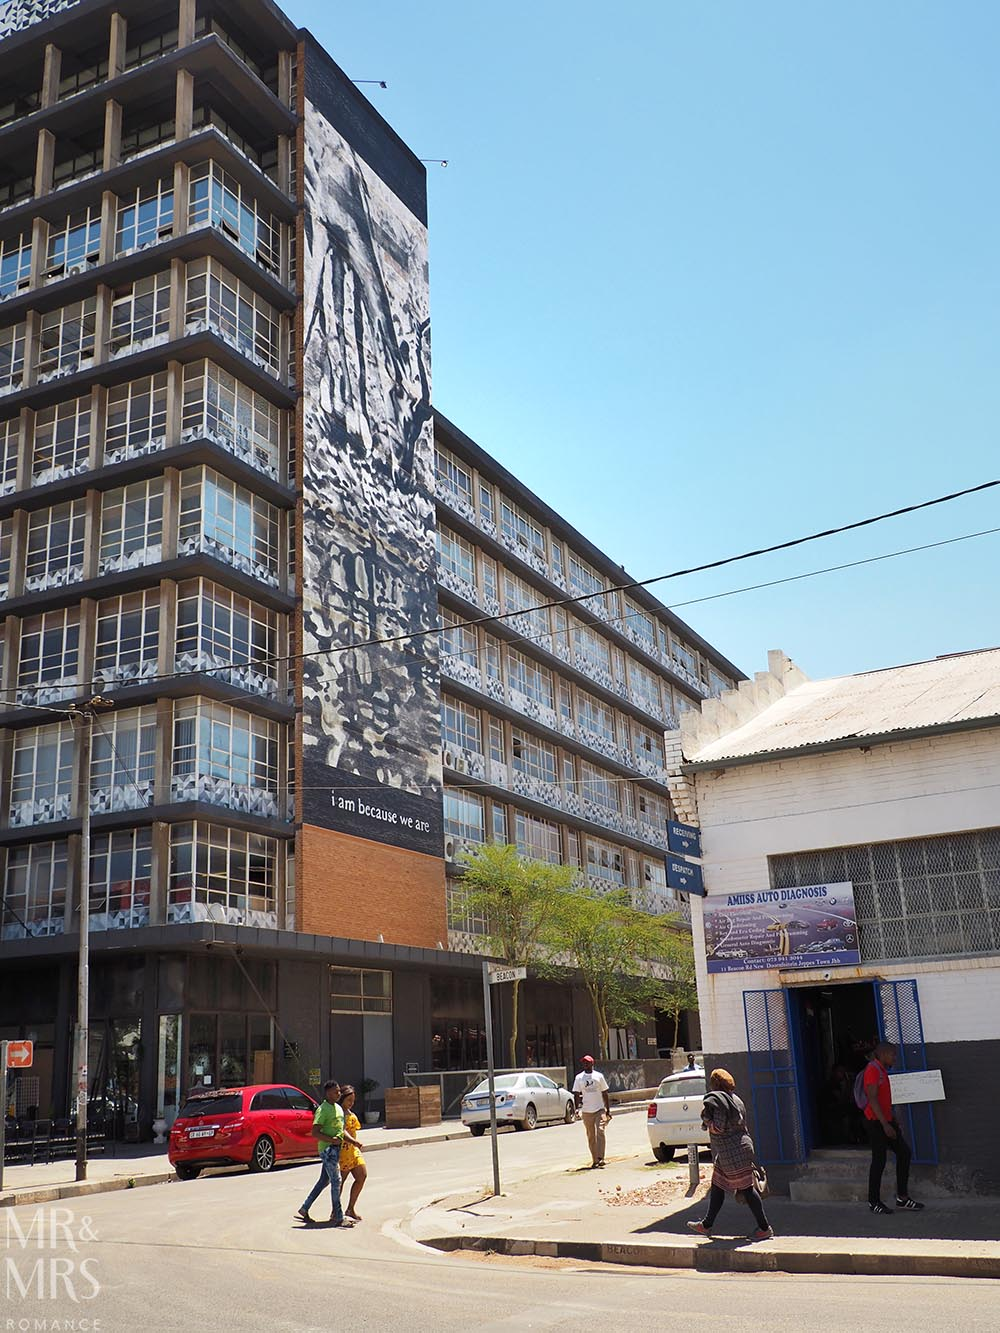 South Africa Tourism - street art tour Maboneng Johannesburg